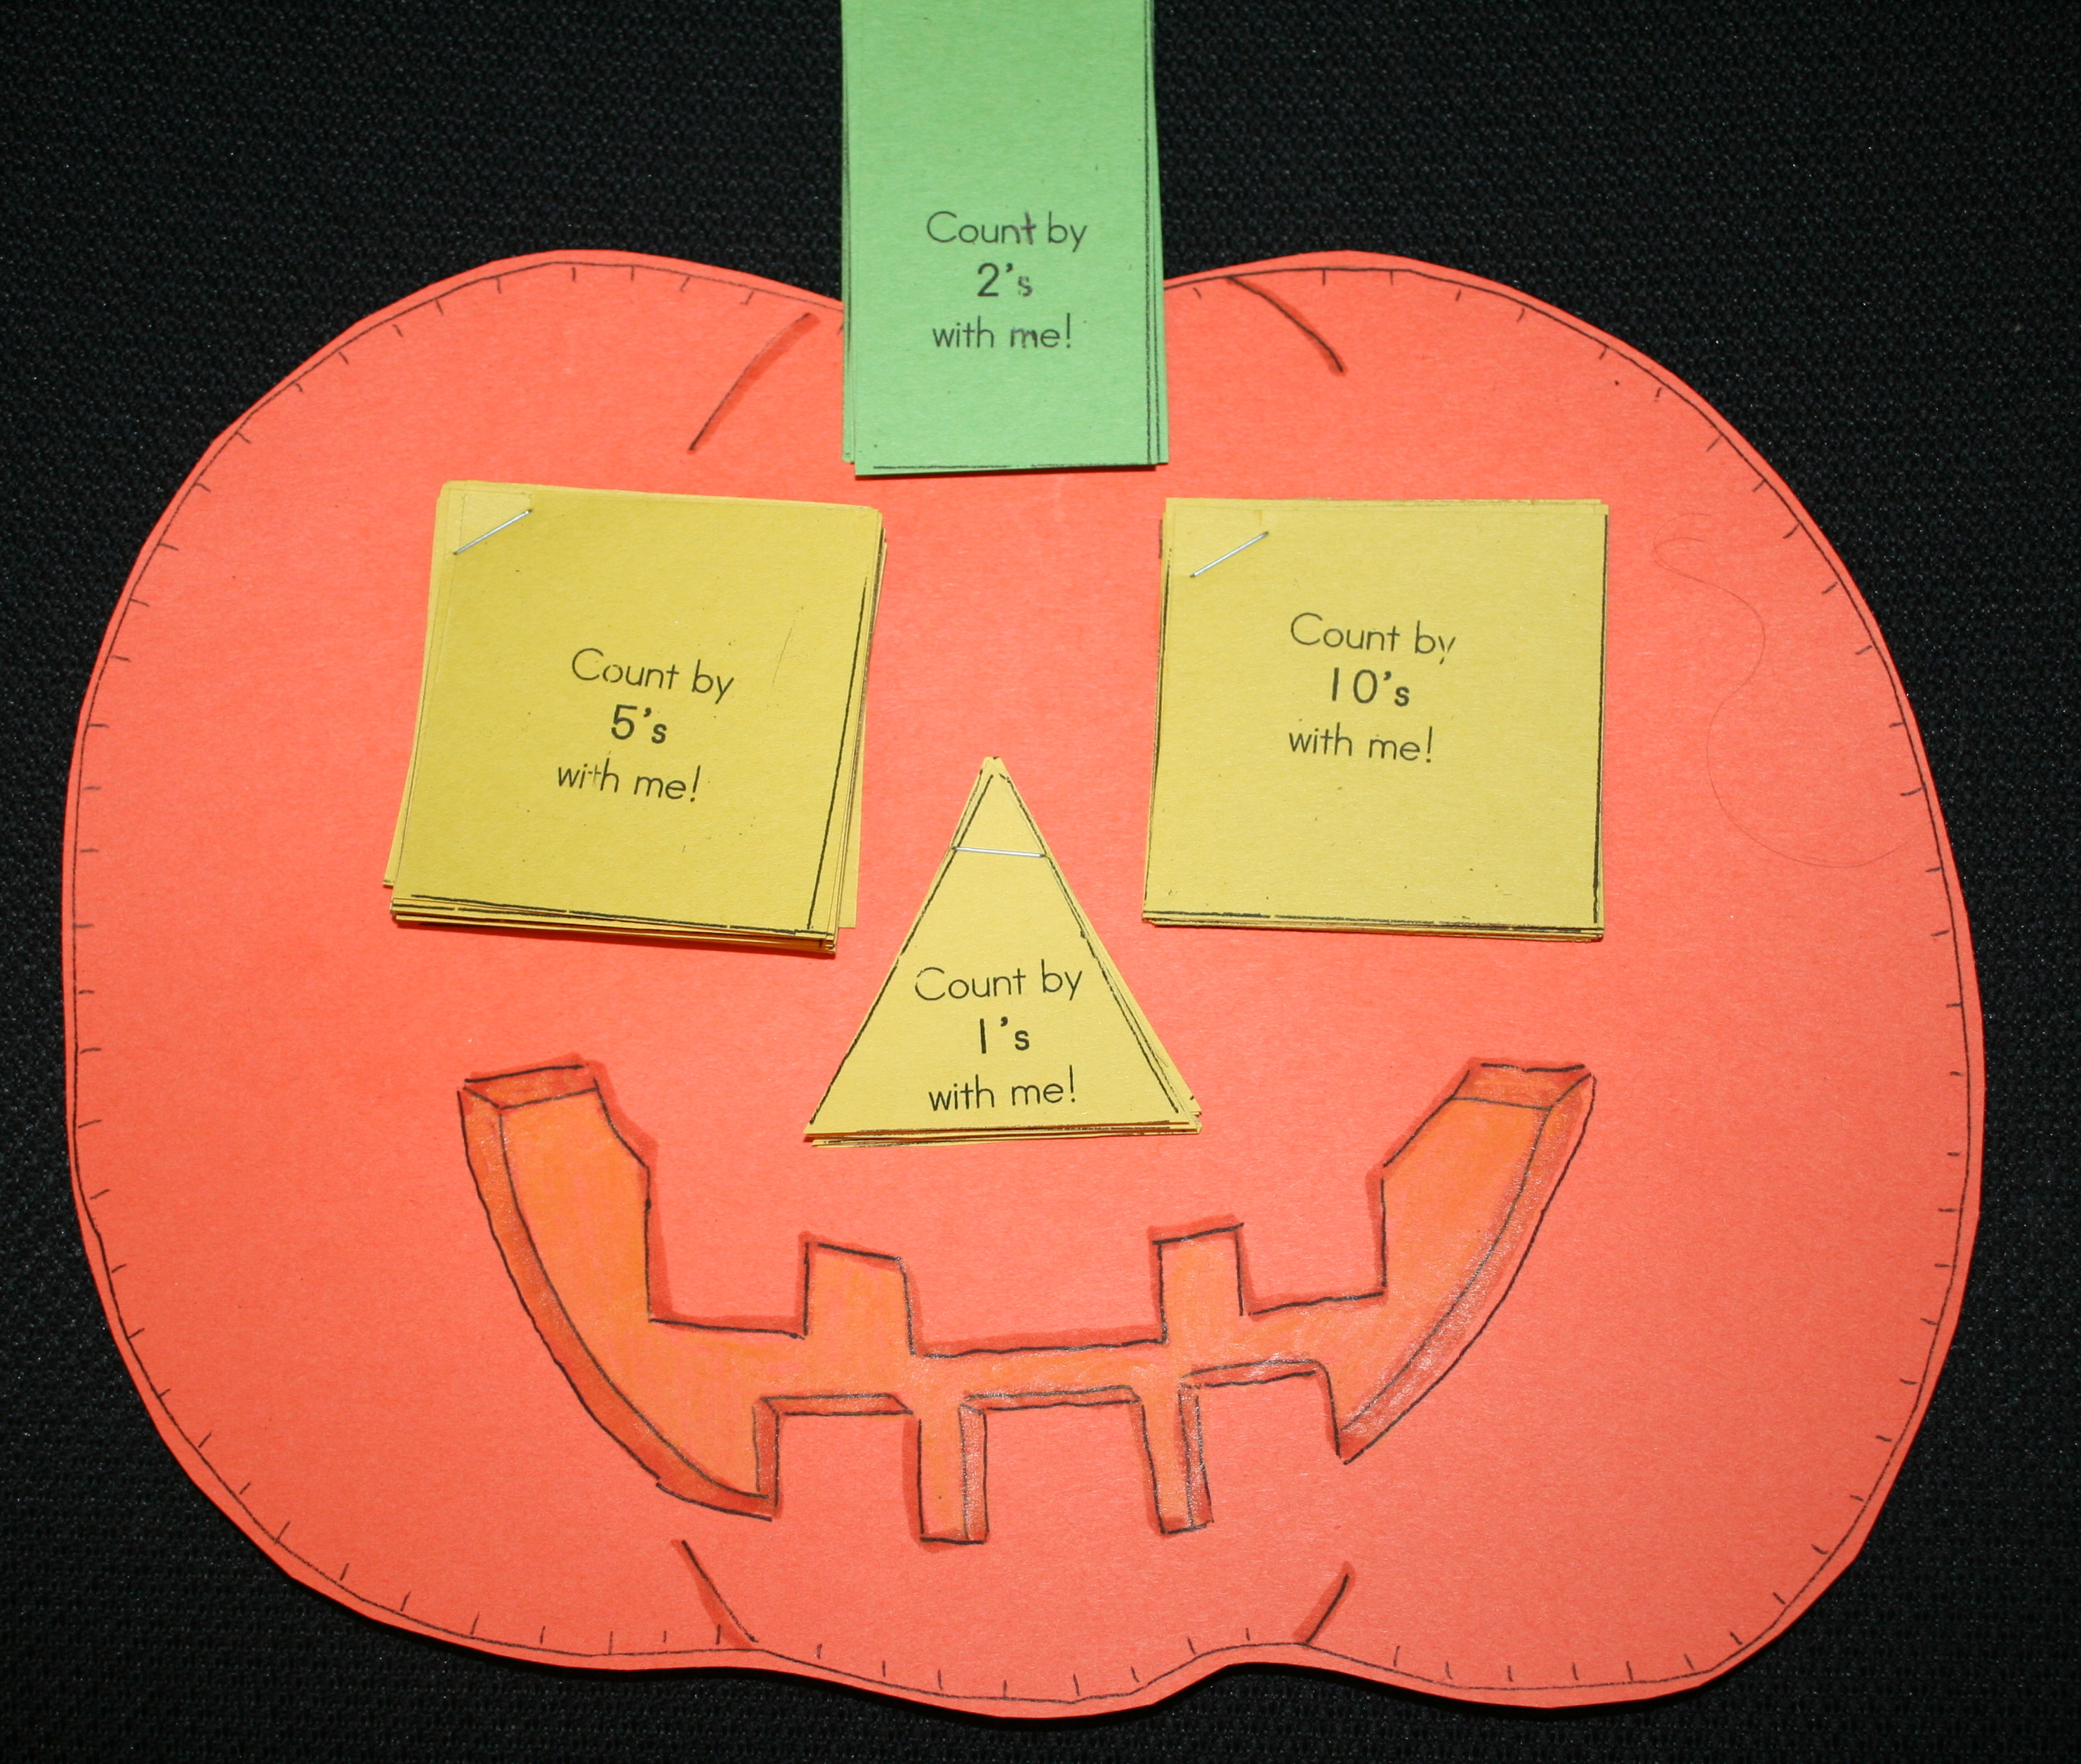 counting pumpkin, pumpkin lessons, apple lessons, apple graphs, pumpkin graphs, comparing apples and pumpkins, apple and pumpkin Venn diagram, skip counting by 2's, 3's, 5's and 10's, counting booklets, skip counting booklets,